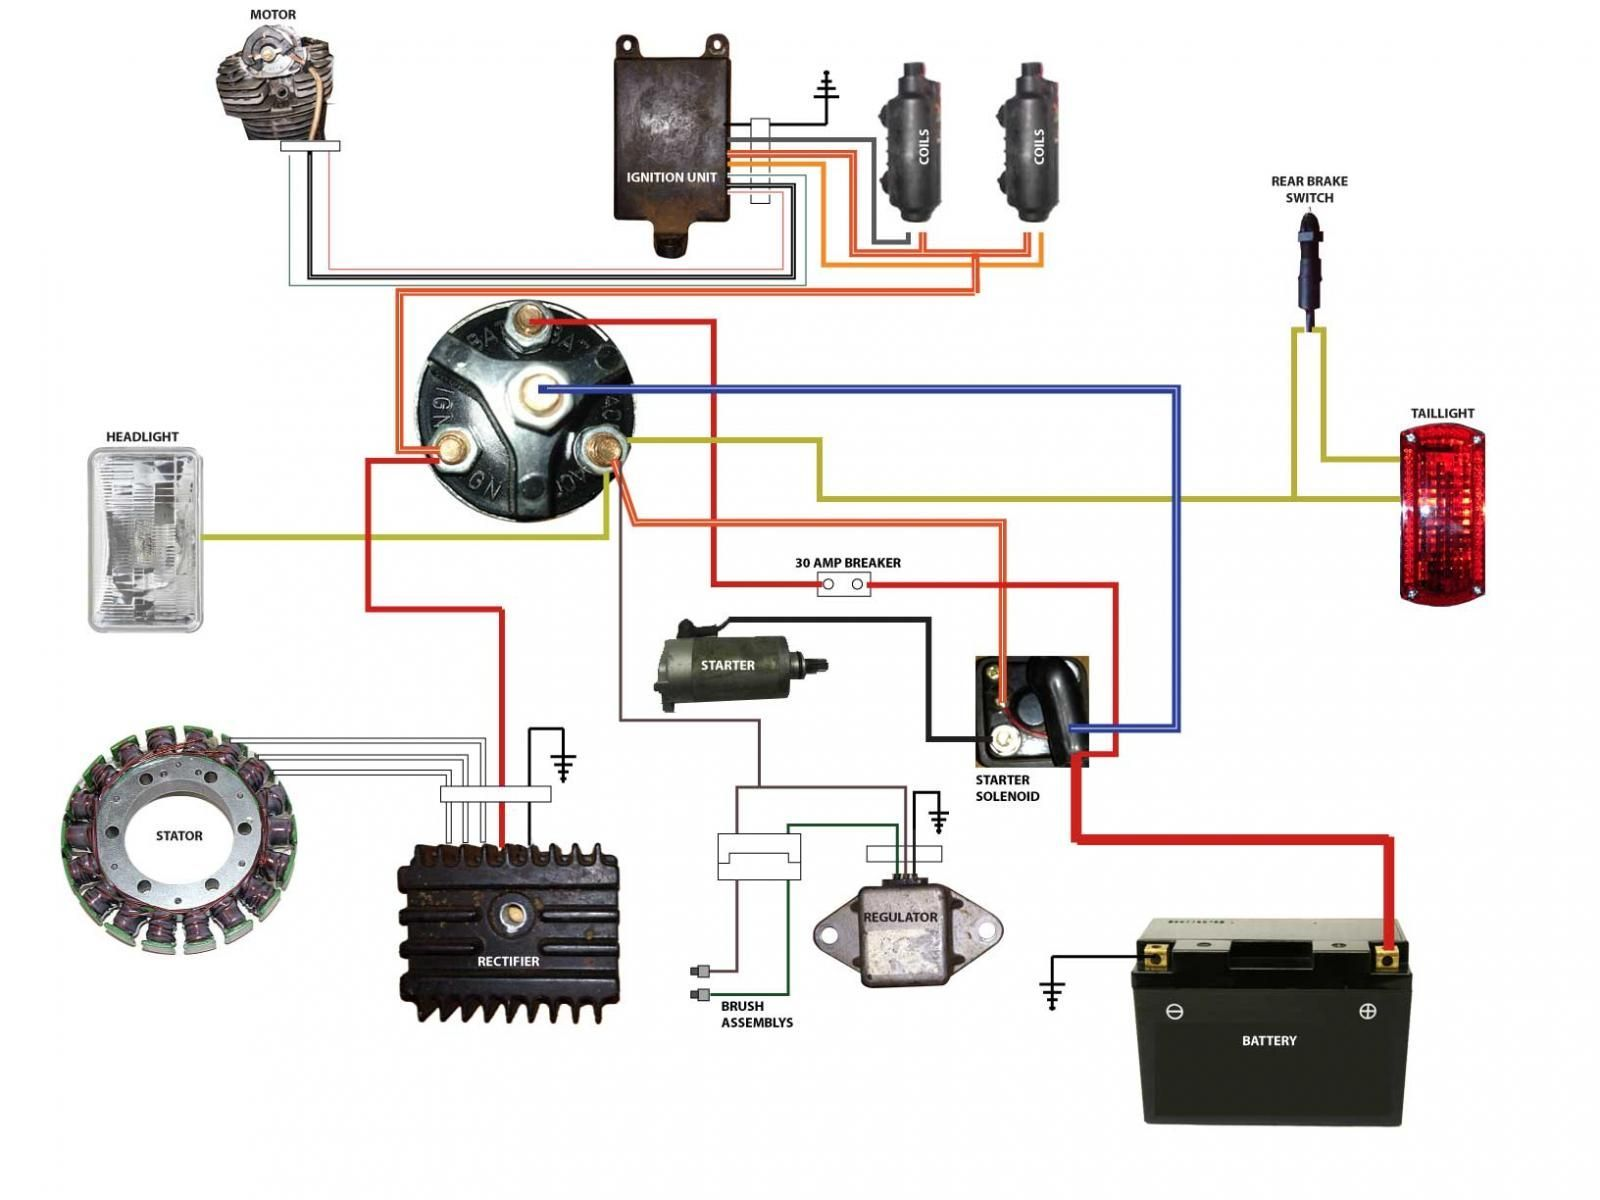 Simplified Wiring Diagram For Xs400 Cafe Projects To Try